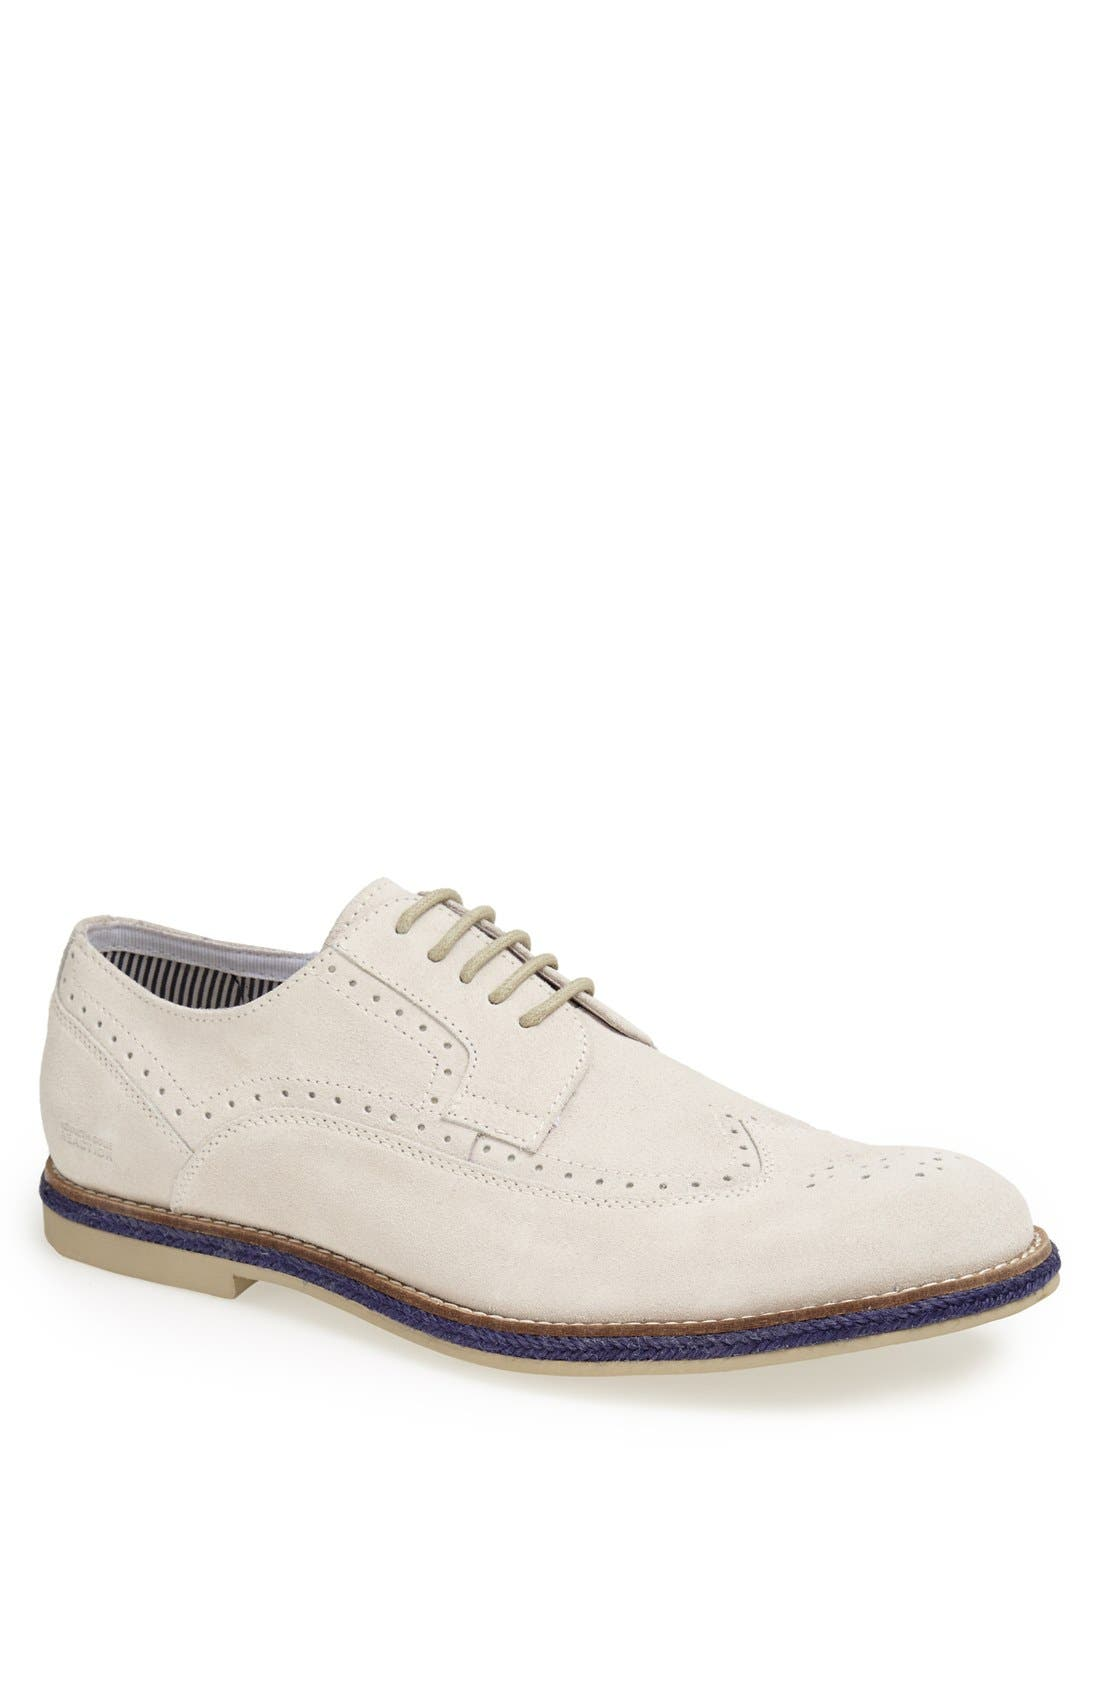 Alternate Image 1 Selected - Kenneth Cole Reaction 'Grow-Ceeds' Wingtip